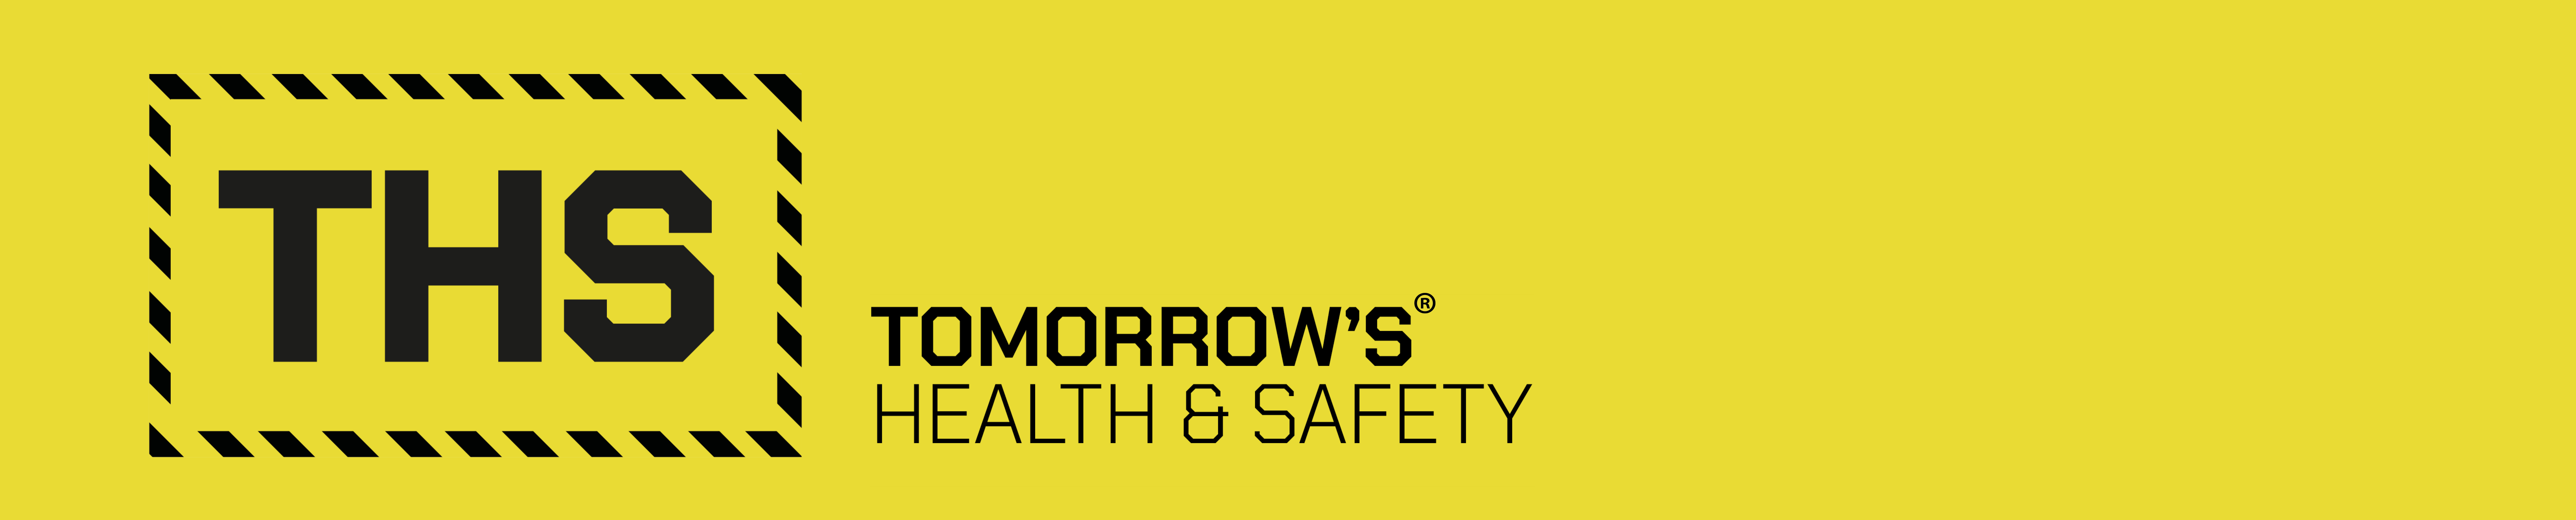 Tomorrow's Health and Safety